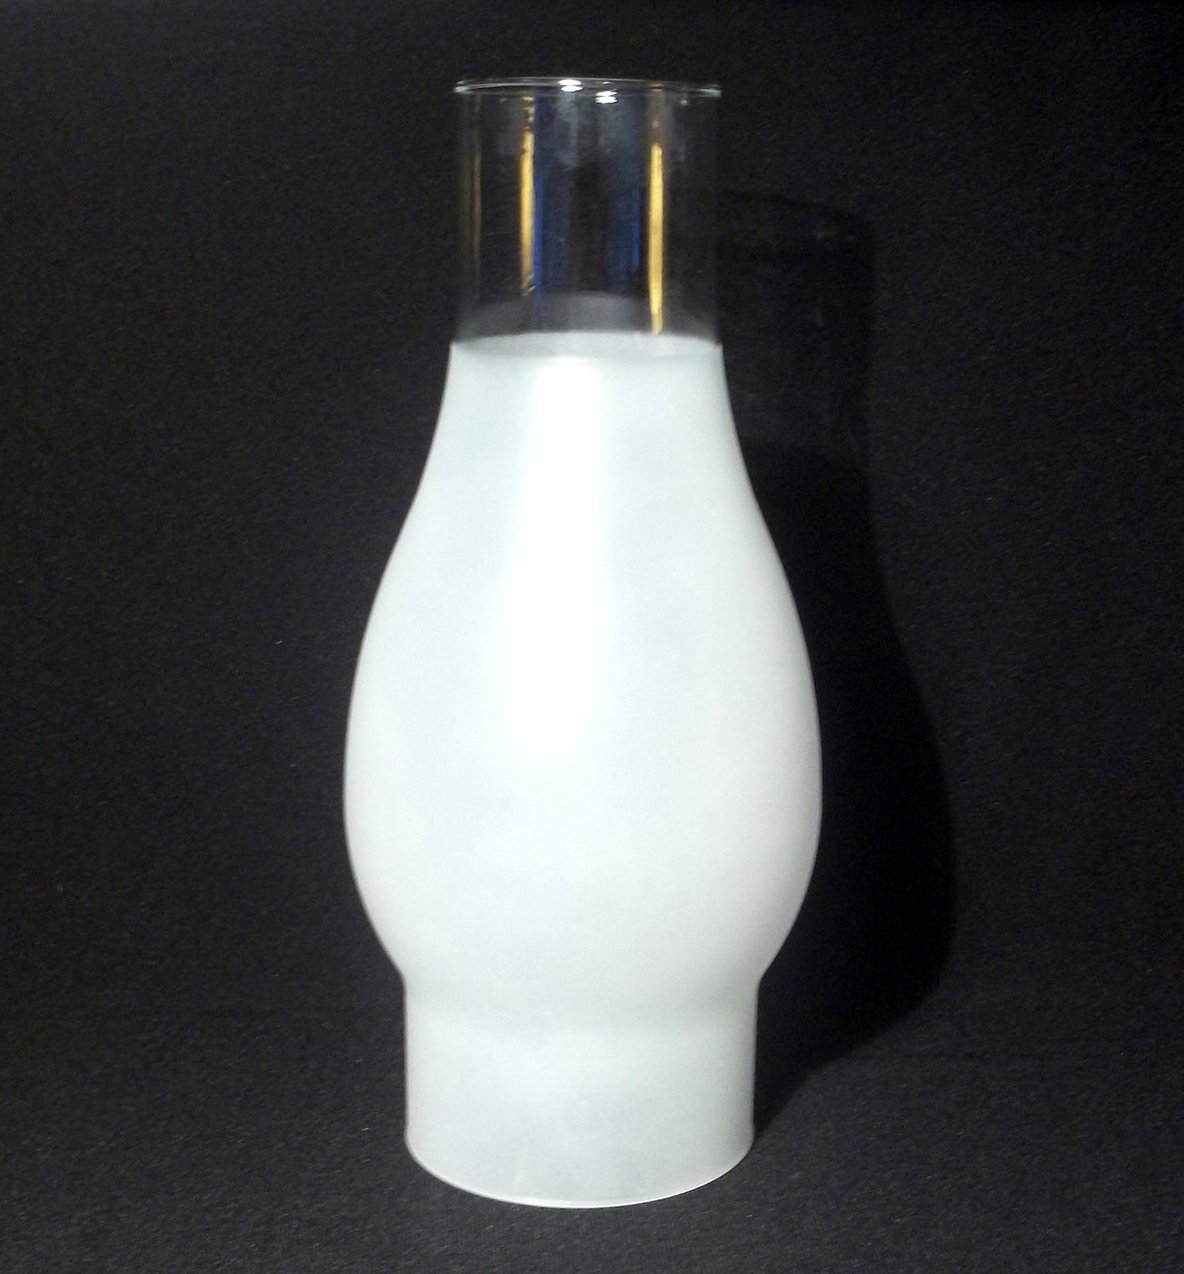 Hurricane lamp shade 3 4 frosted 2 5 8 inch fitter x 7 7 8 oos for Captured glass floor lamp